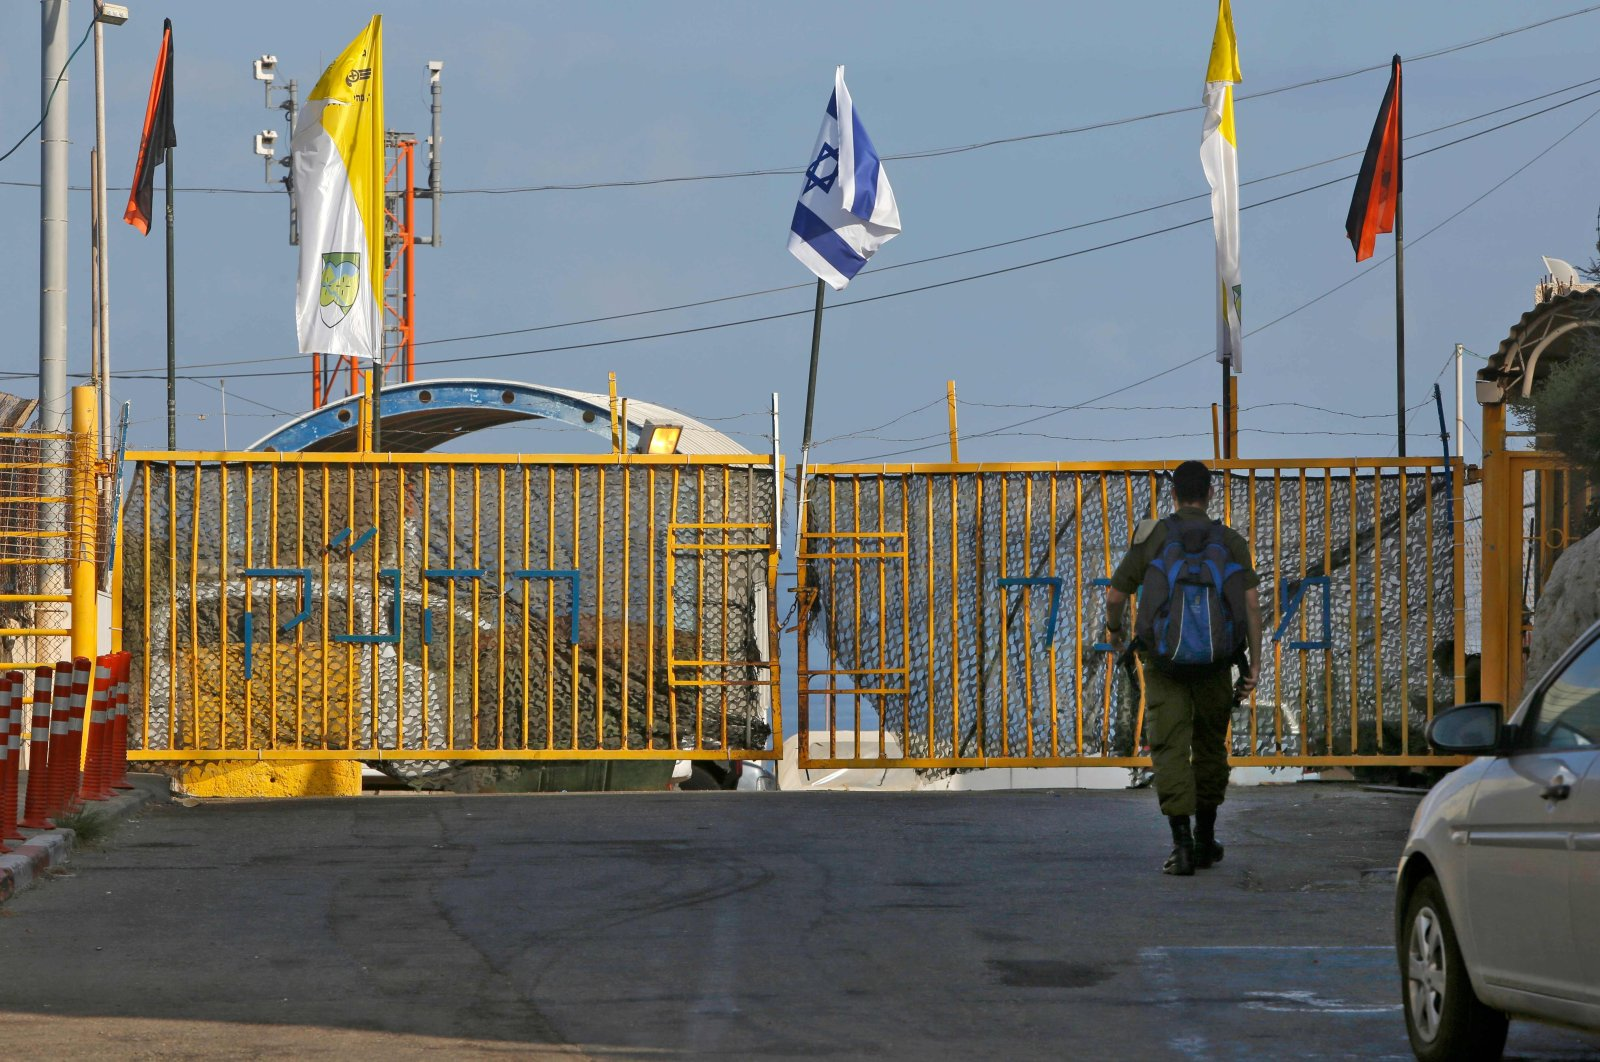 An Israeli soldier walking up to the gate of the Rosh HaNikra Crossing, also known as the Ras Al Naqoura Crossing, between Israel and Lebanon on Oct. 12, 2020. (AFP Photo)